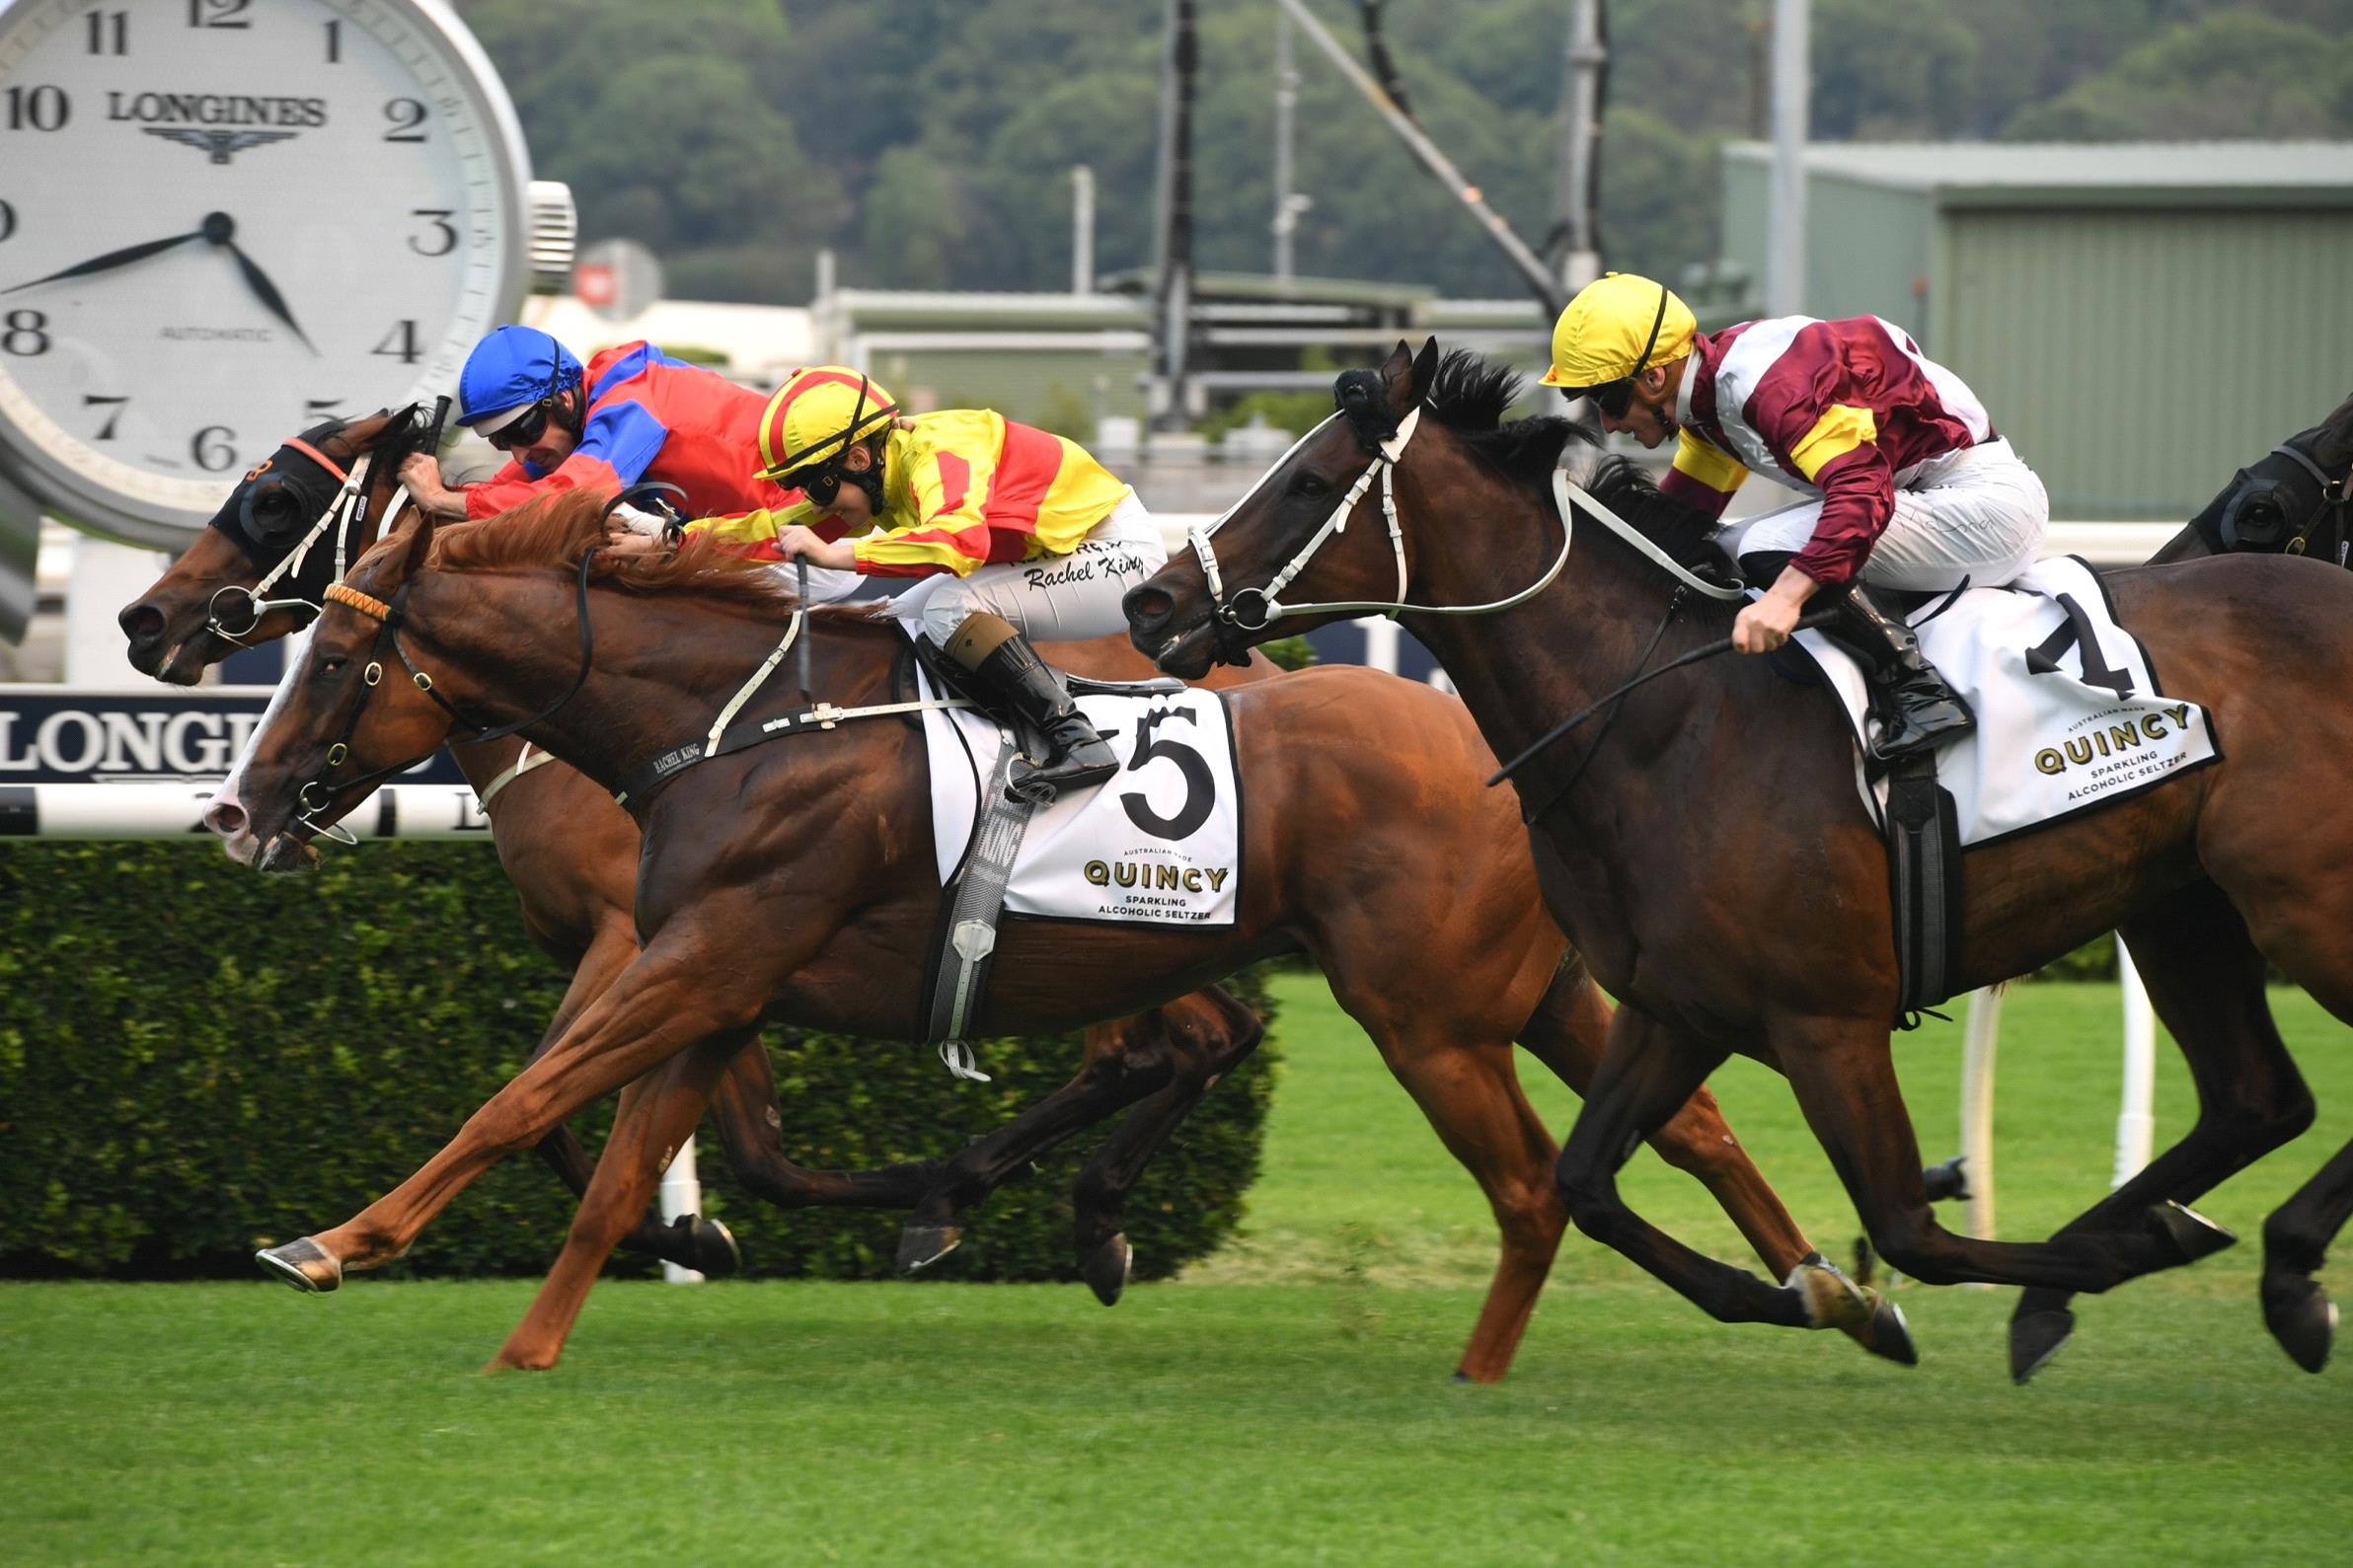 Quackerjack (yellow and red) winning the Villiers Stakes.